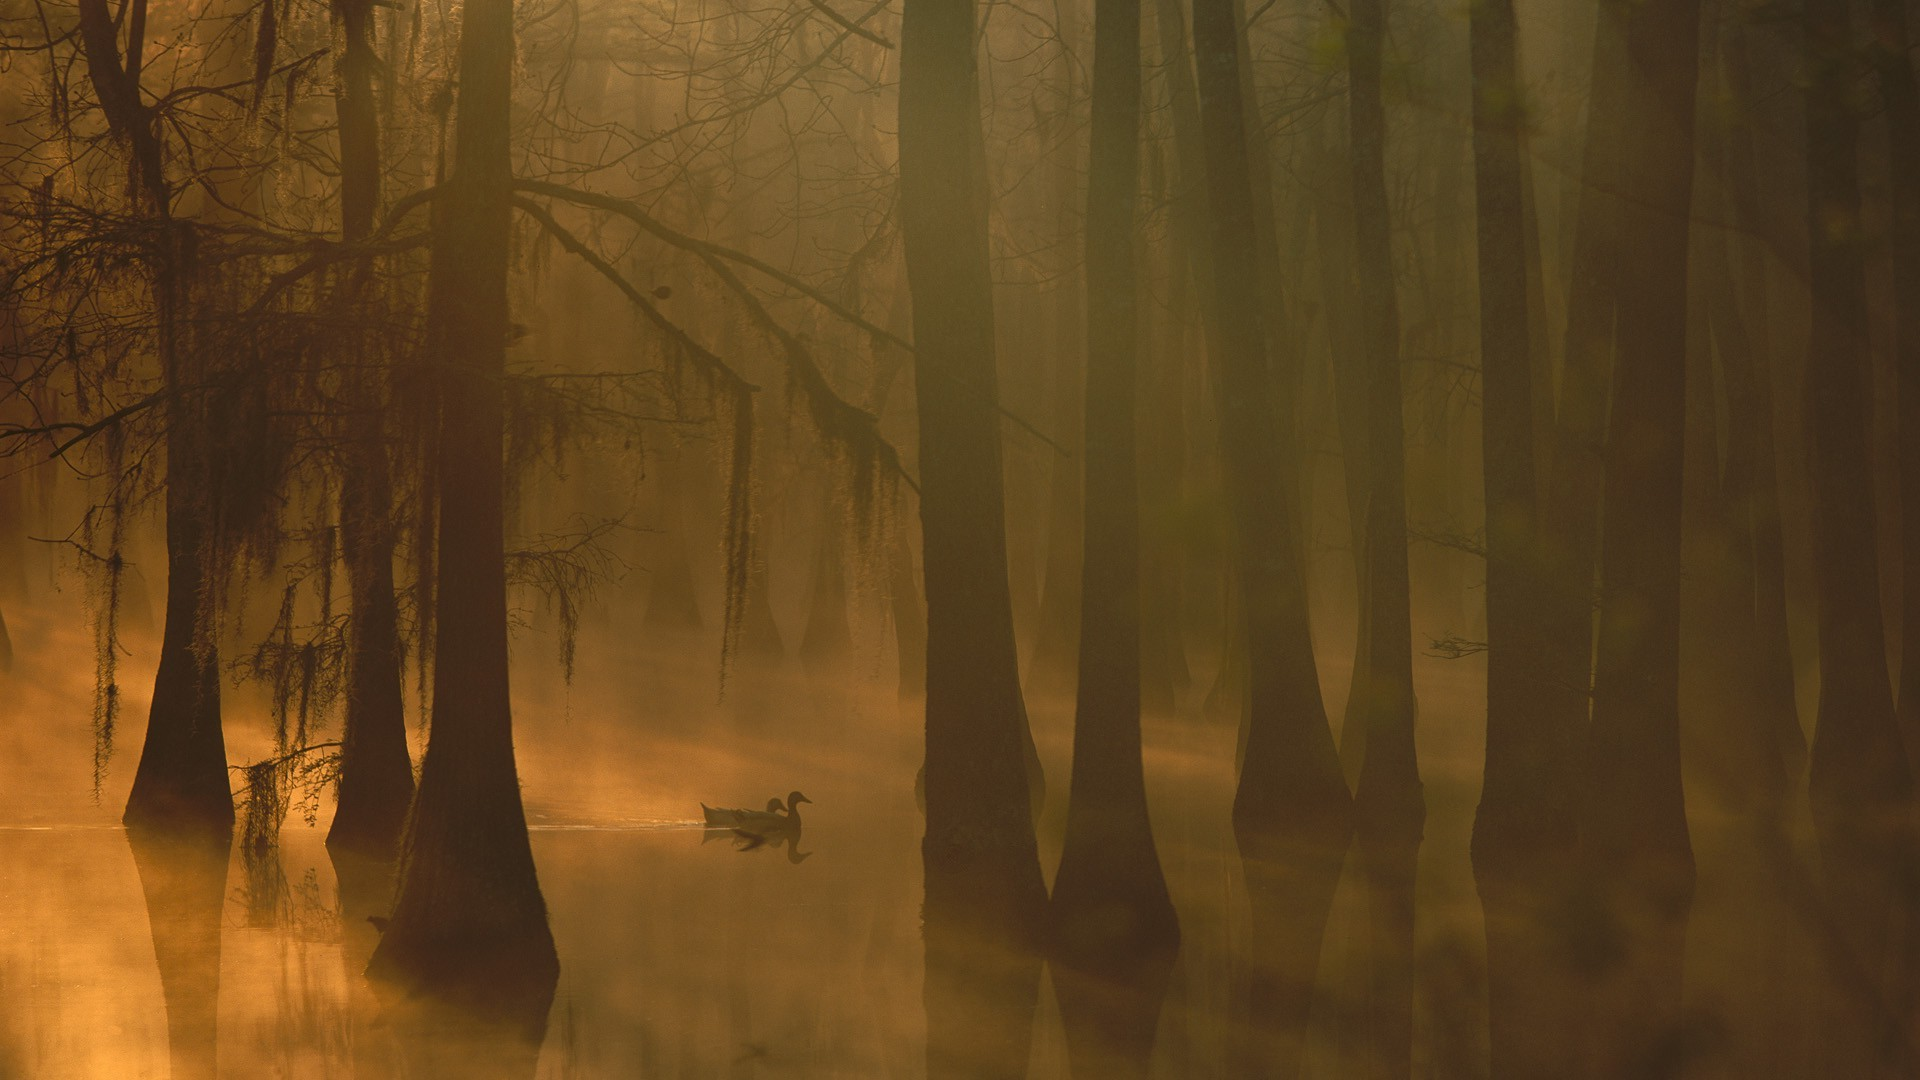 Foggy Fall Wallpaper Nature Trees Forest Leaves Water Lake Mist Morning